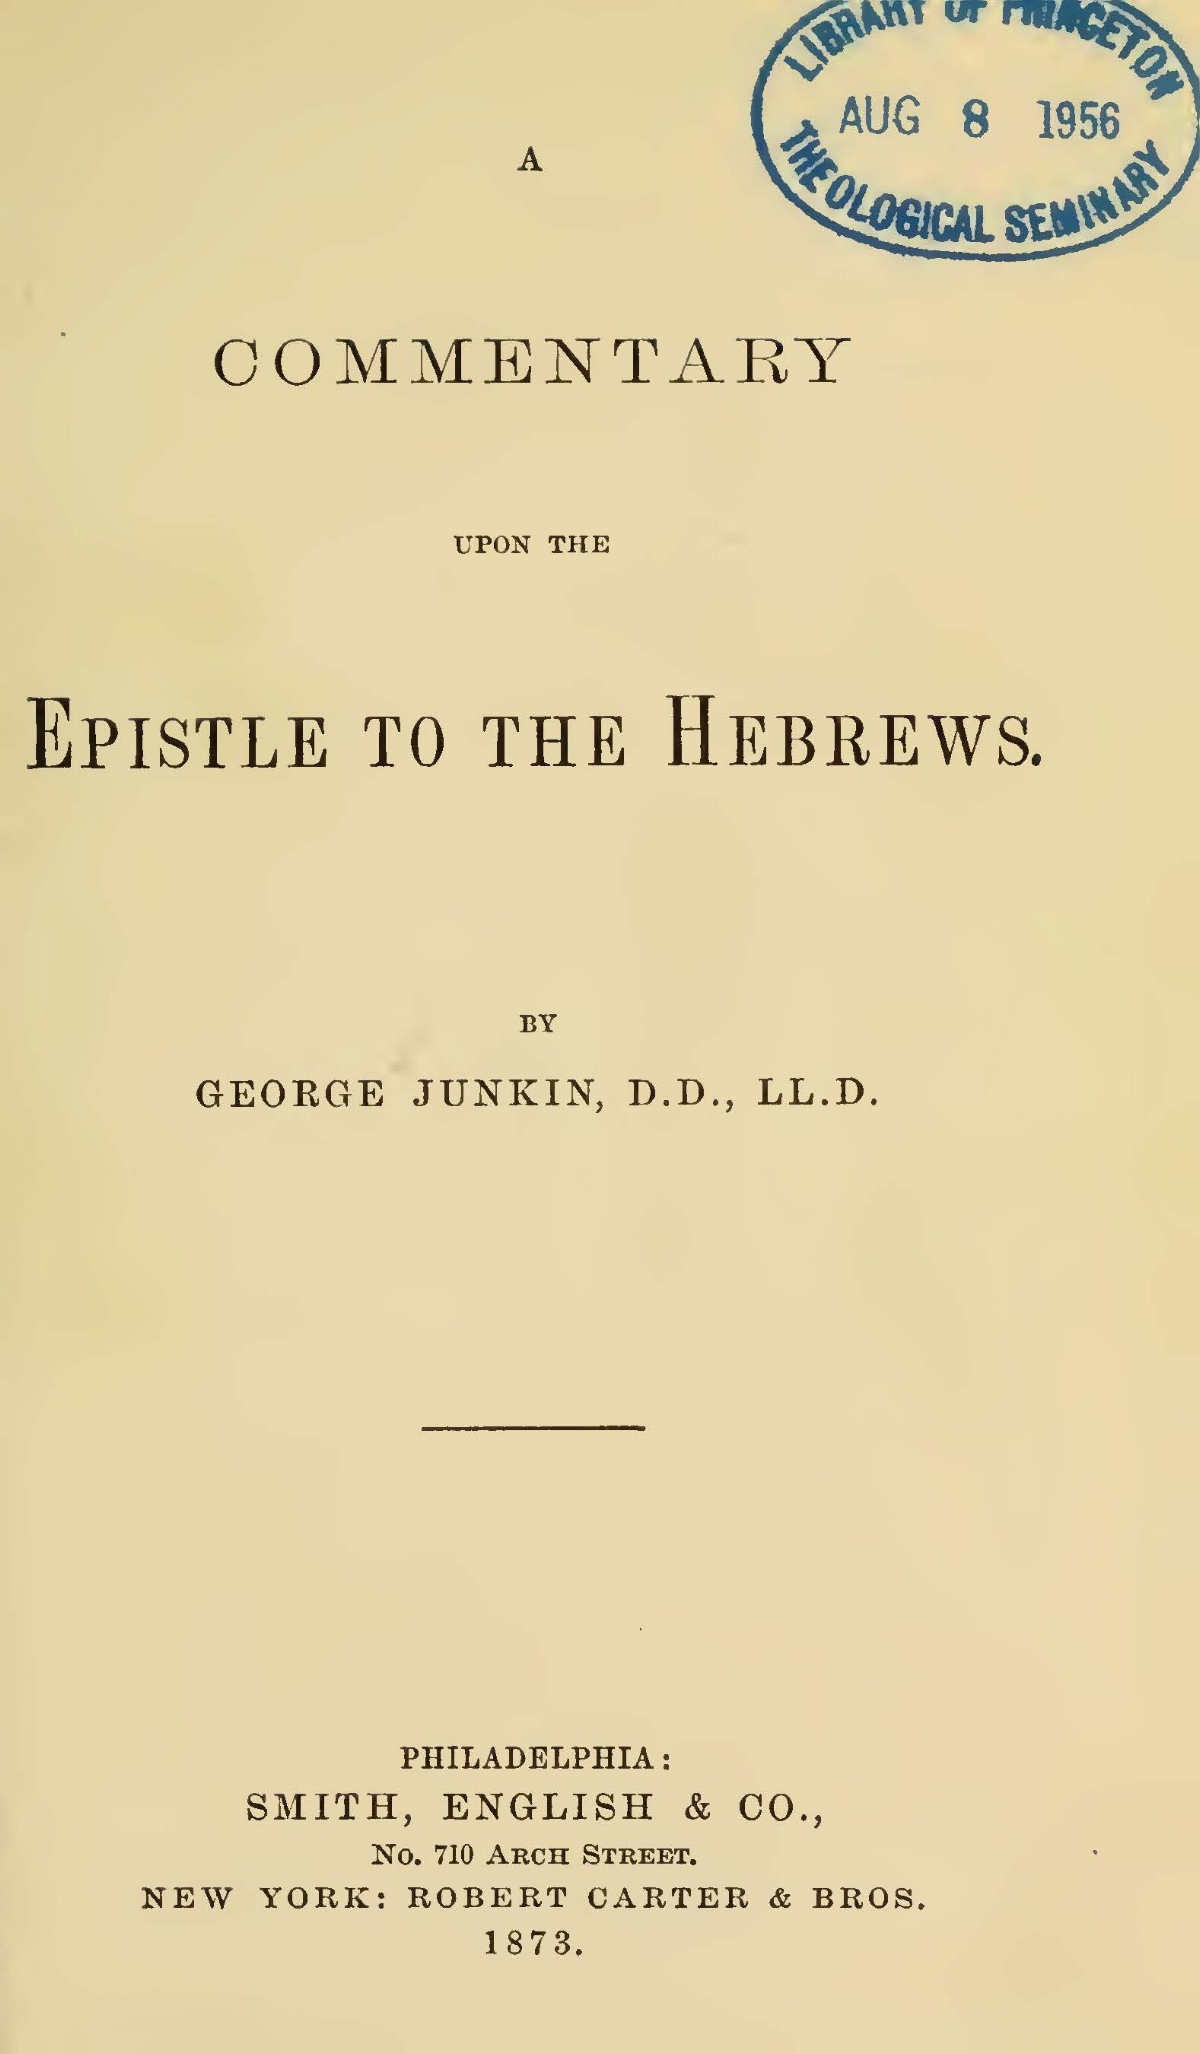 Junkin, George, A Commentary upon the Epistle to the Hebrews Title Page.jpg